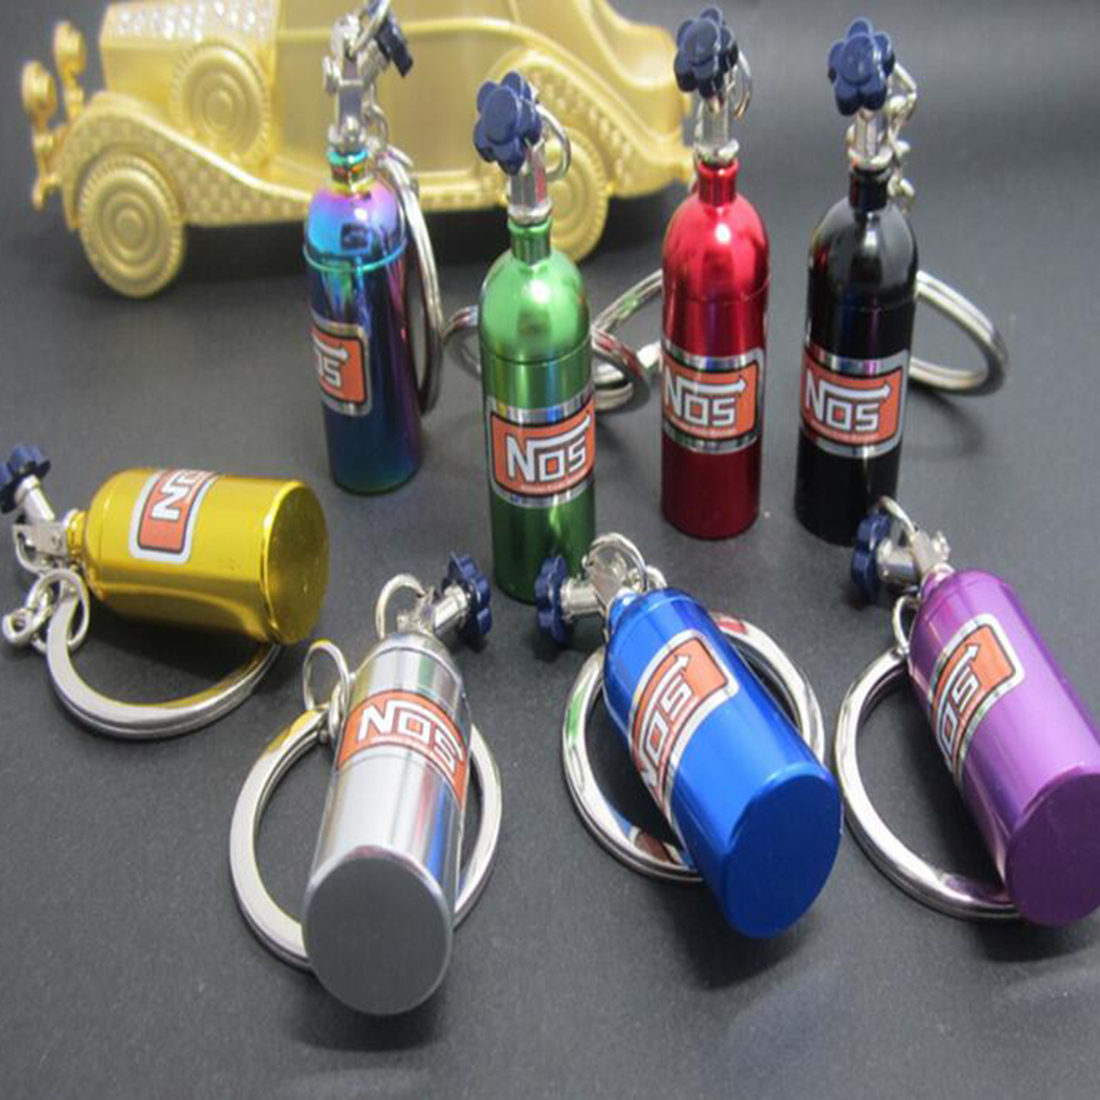 Nice Nitrous Oxide Bottle Extinguisher Keychain Mini Nitrous Oxide Bottle Keyring Stash Pill Box Storage Keyfob Random Color